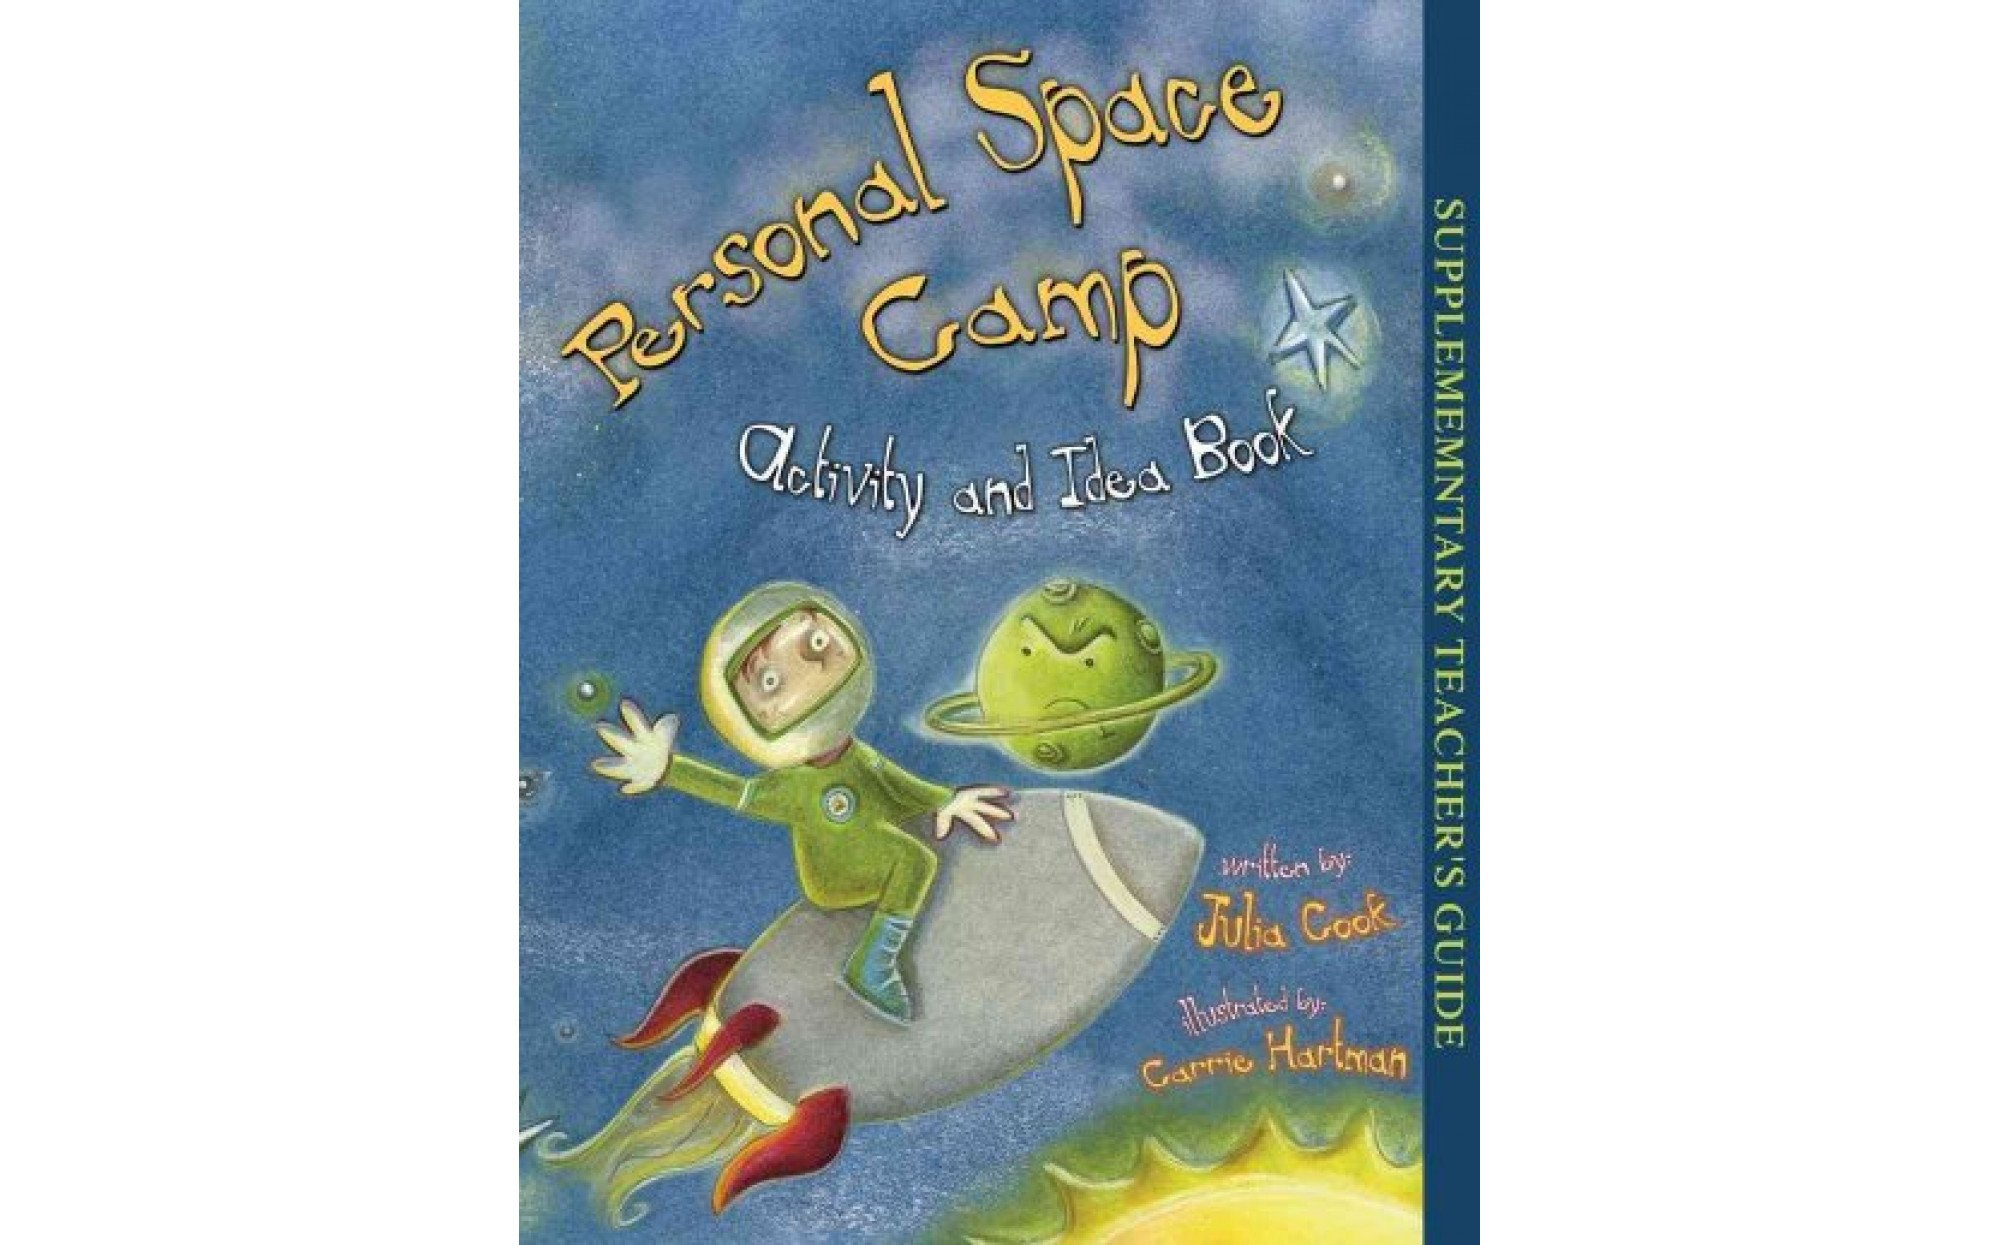 Personal Space Camp Activity And Idea Book Books